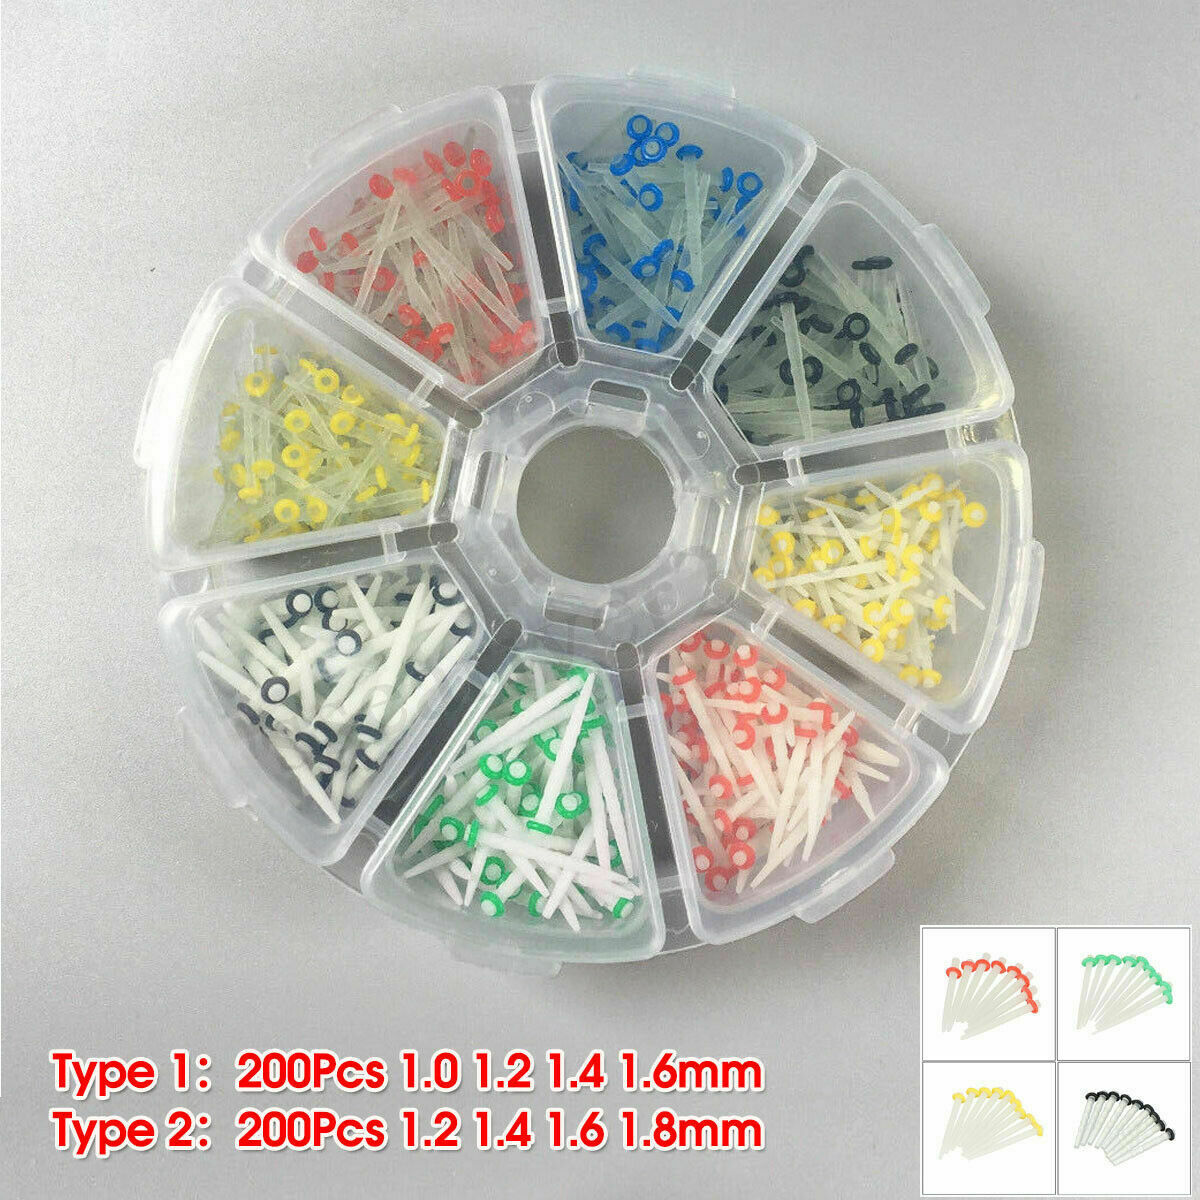 200Pcs Dental Fiber Post Glass Quartz Teeth Restorative 1.0 1.2 1.4 1.6 1.8 Post